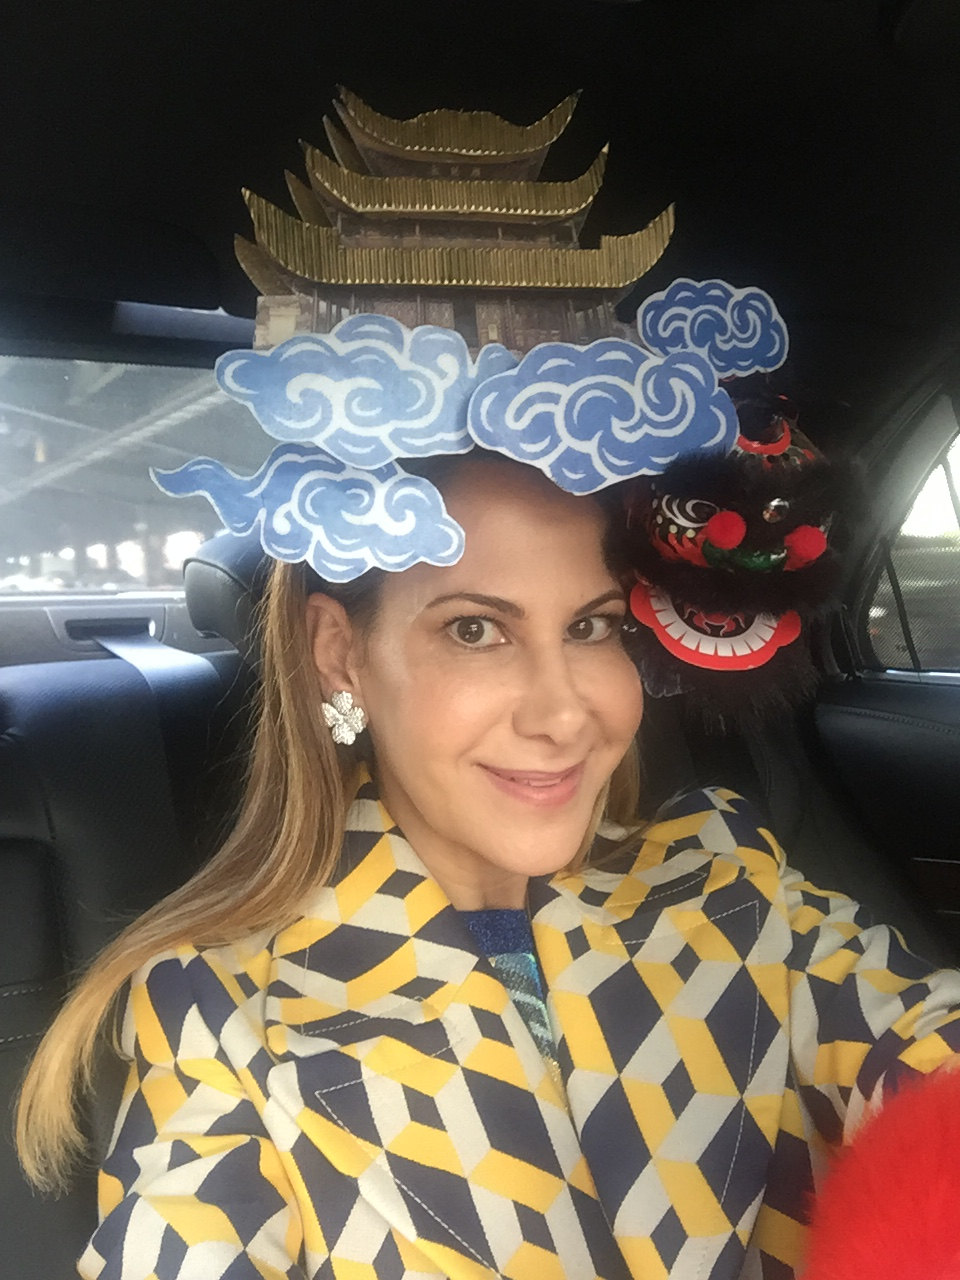 Chinese Yueyang Tower & Dragon Headpiece